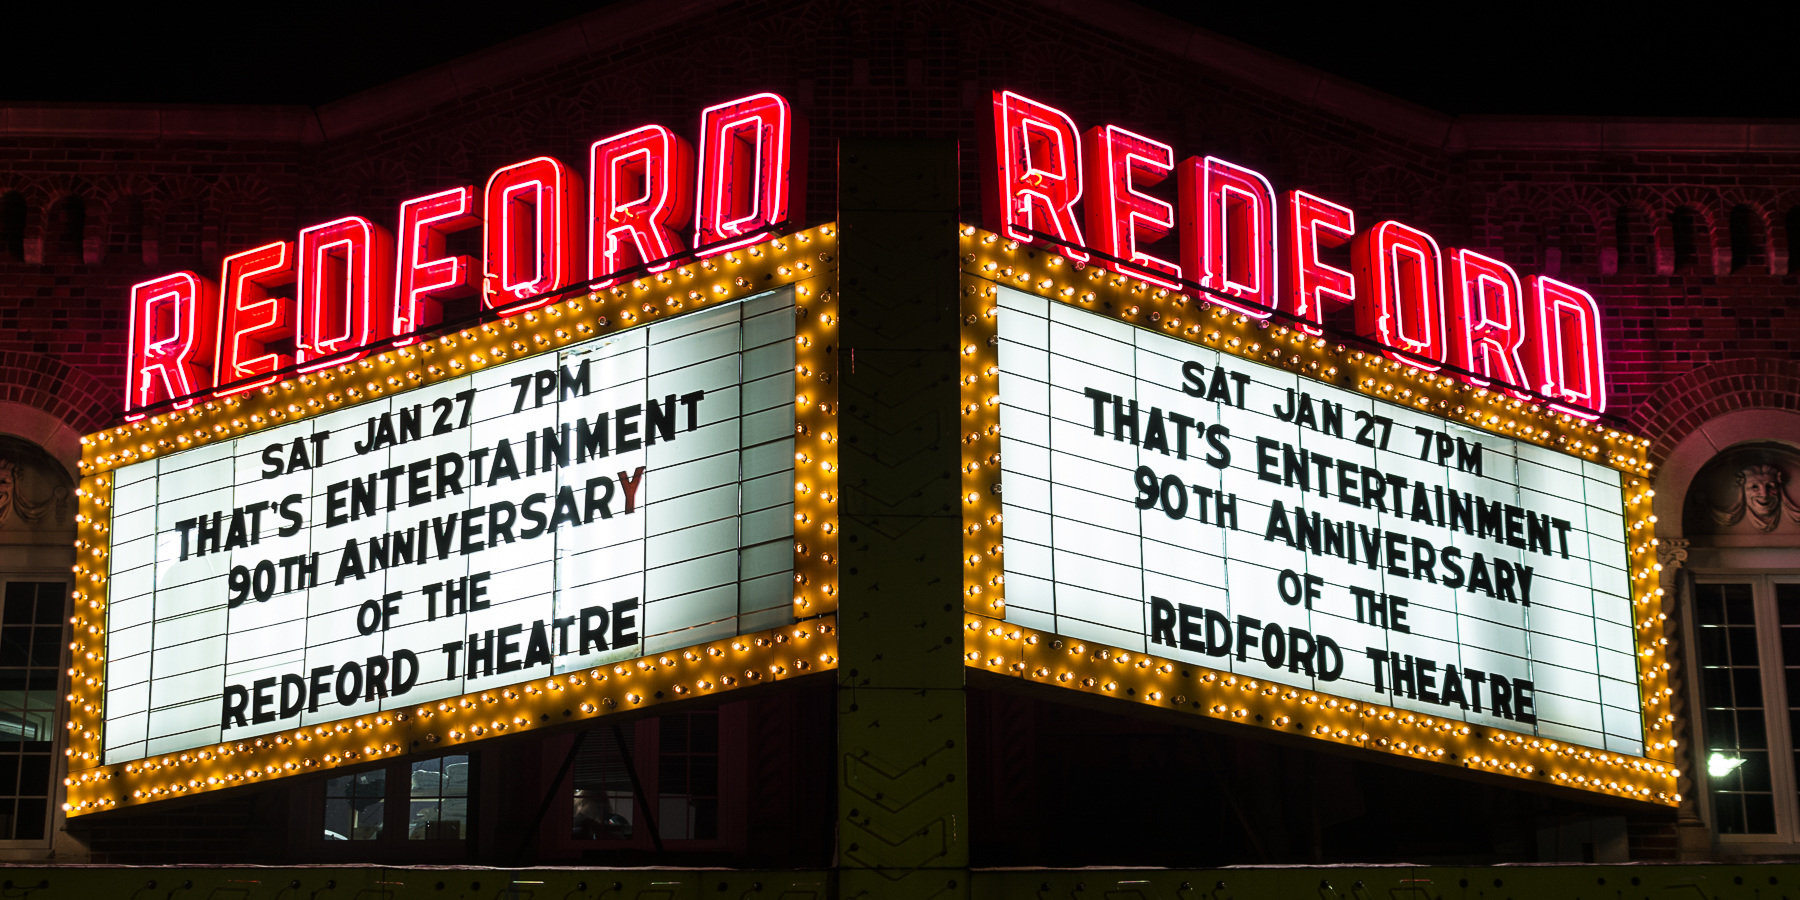 Theatres Redford Marquis - 90th Anniversary